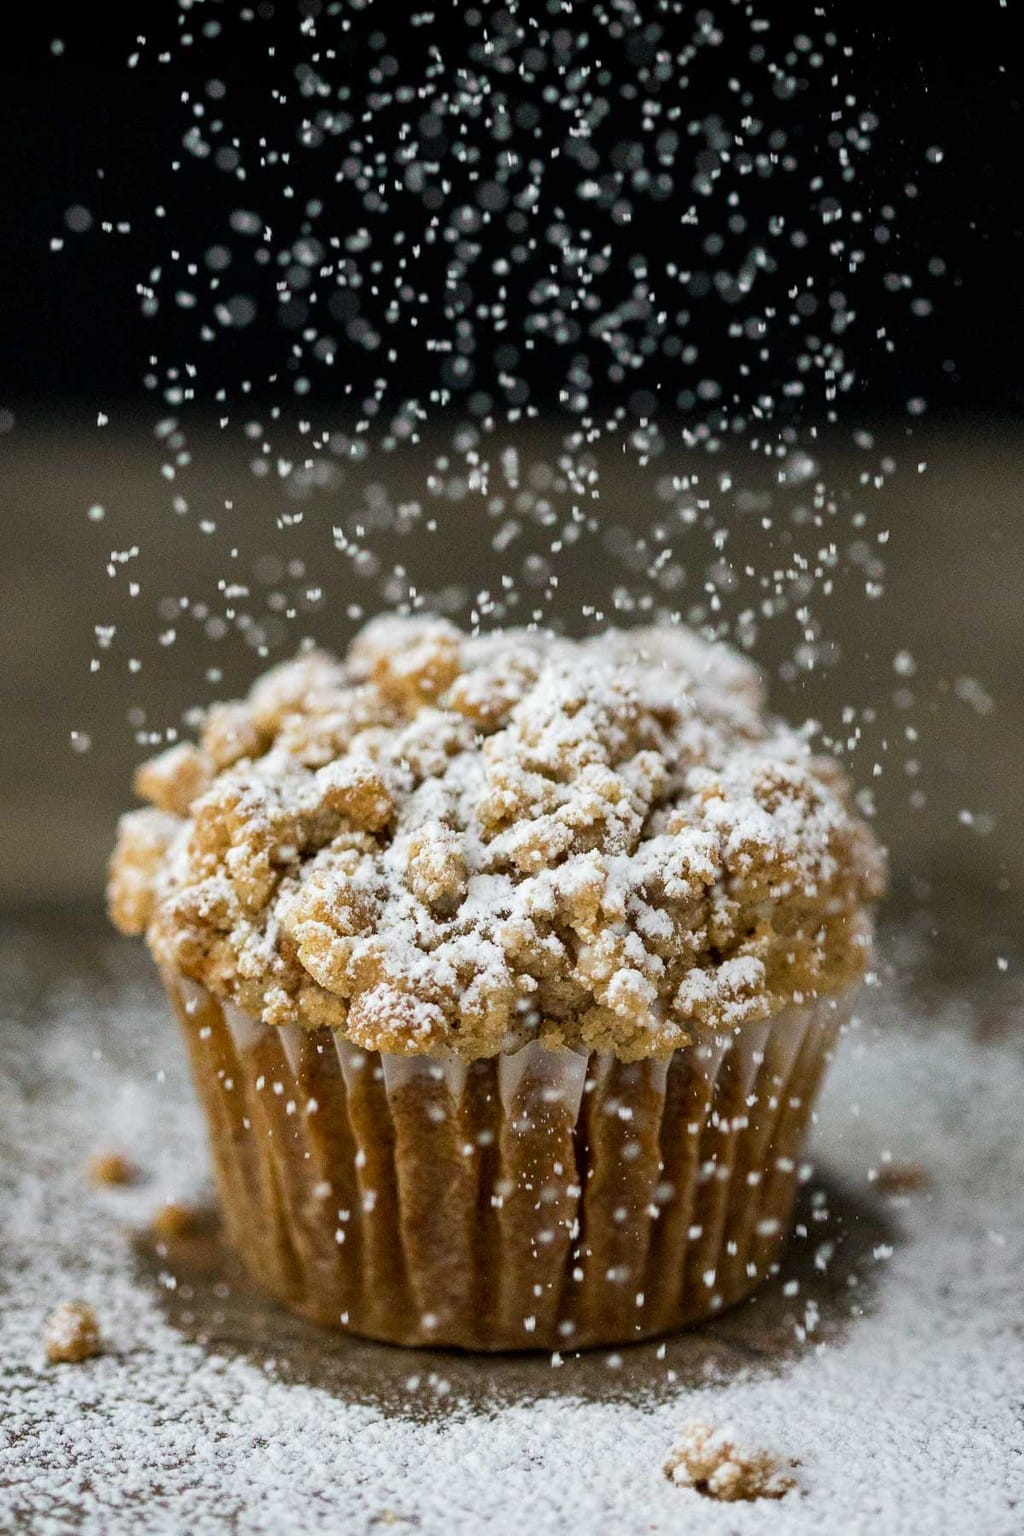 Vertical closeup photo of a Pumpkin Crumb Muffin with powdered sugar being sprinkled on top.